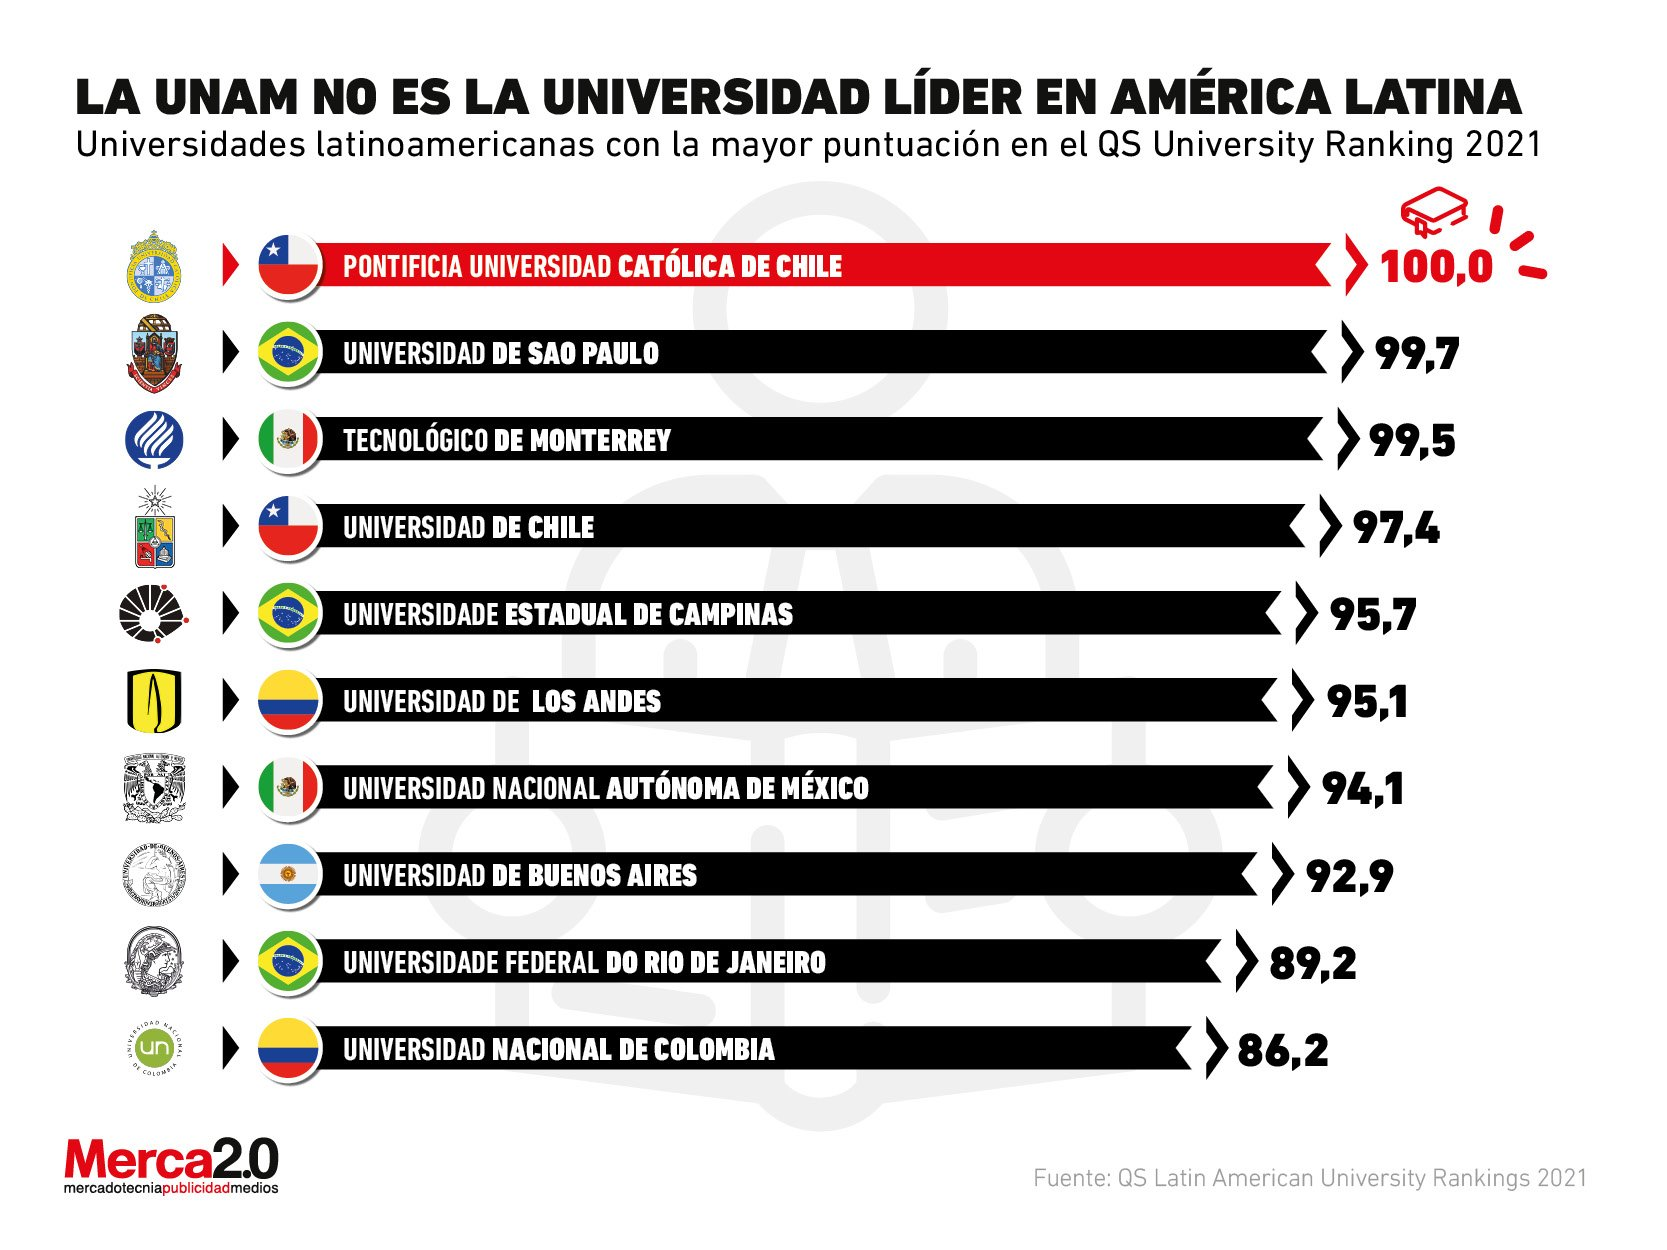 These are the best universities in Latin America